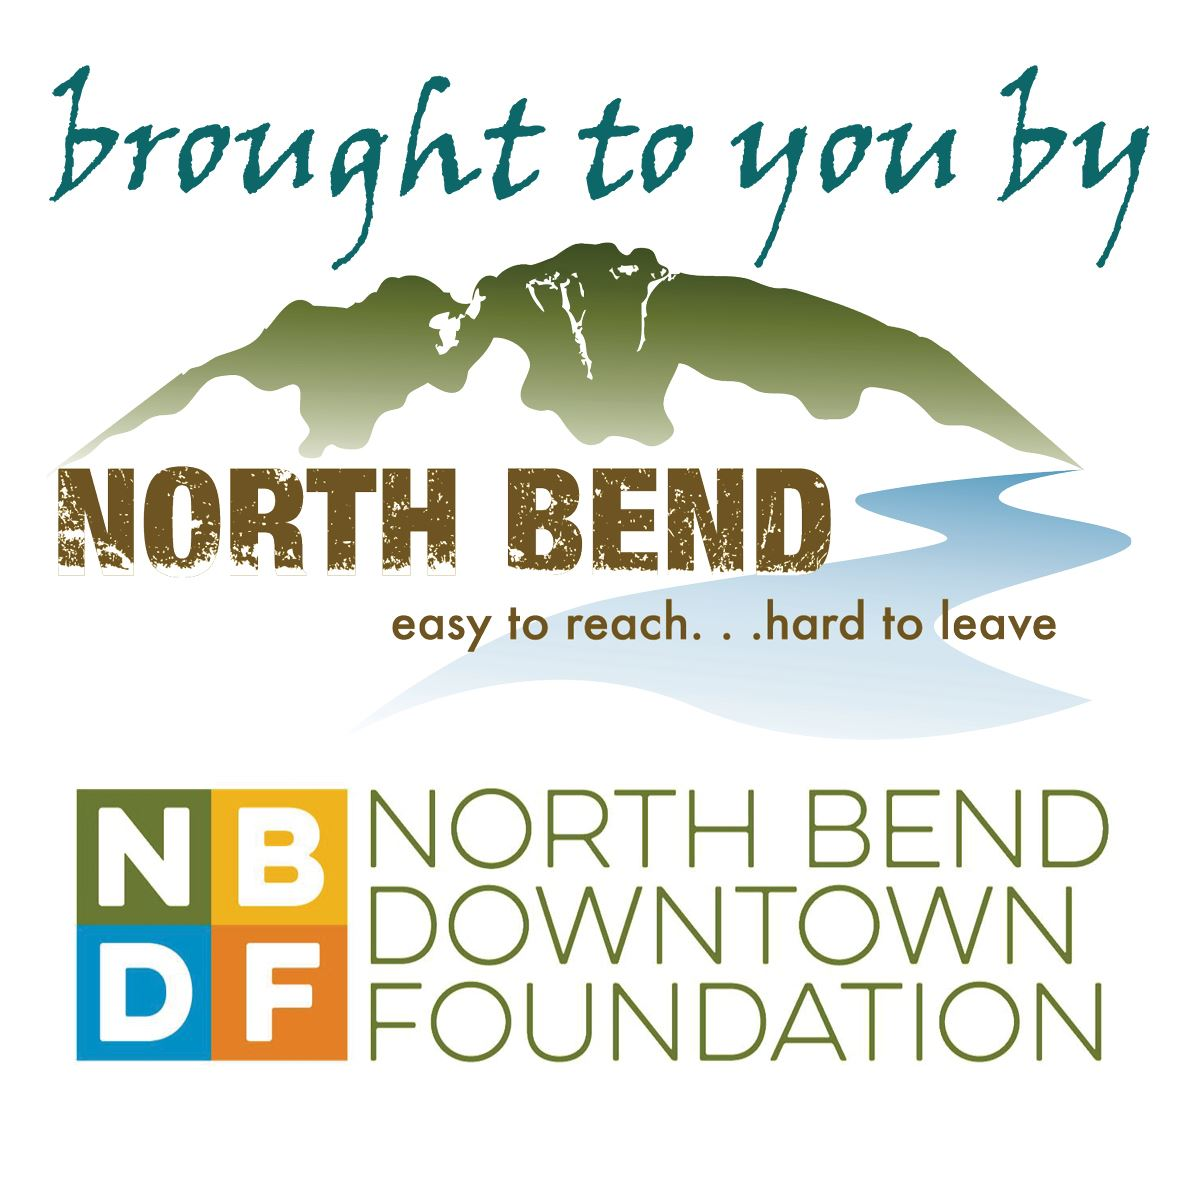 Brought to You by the City of North Bend and the North Bend Downtown Foundation